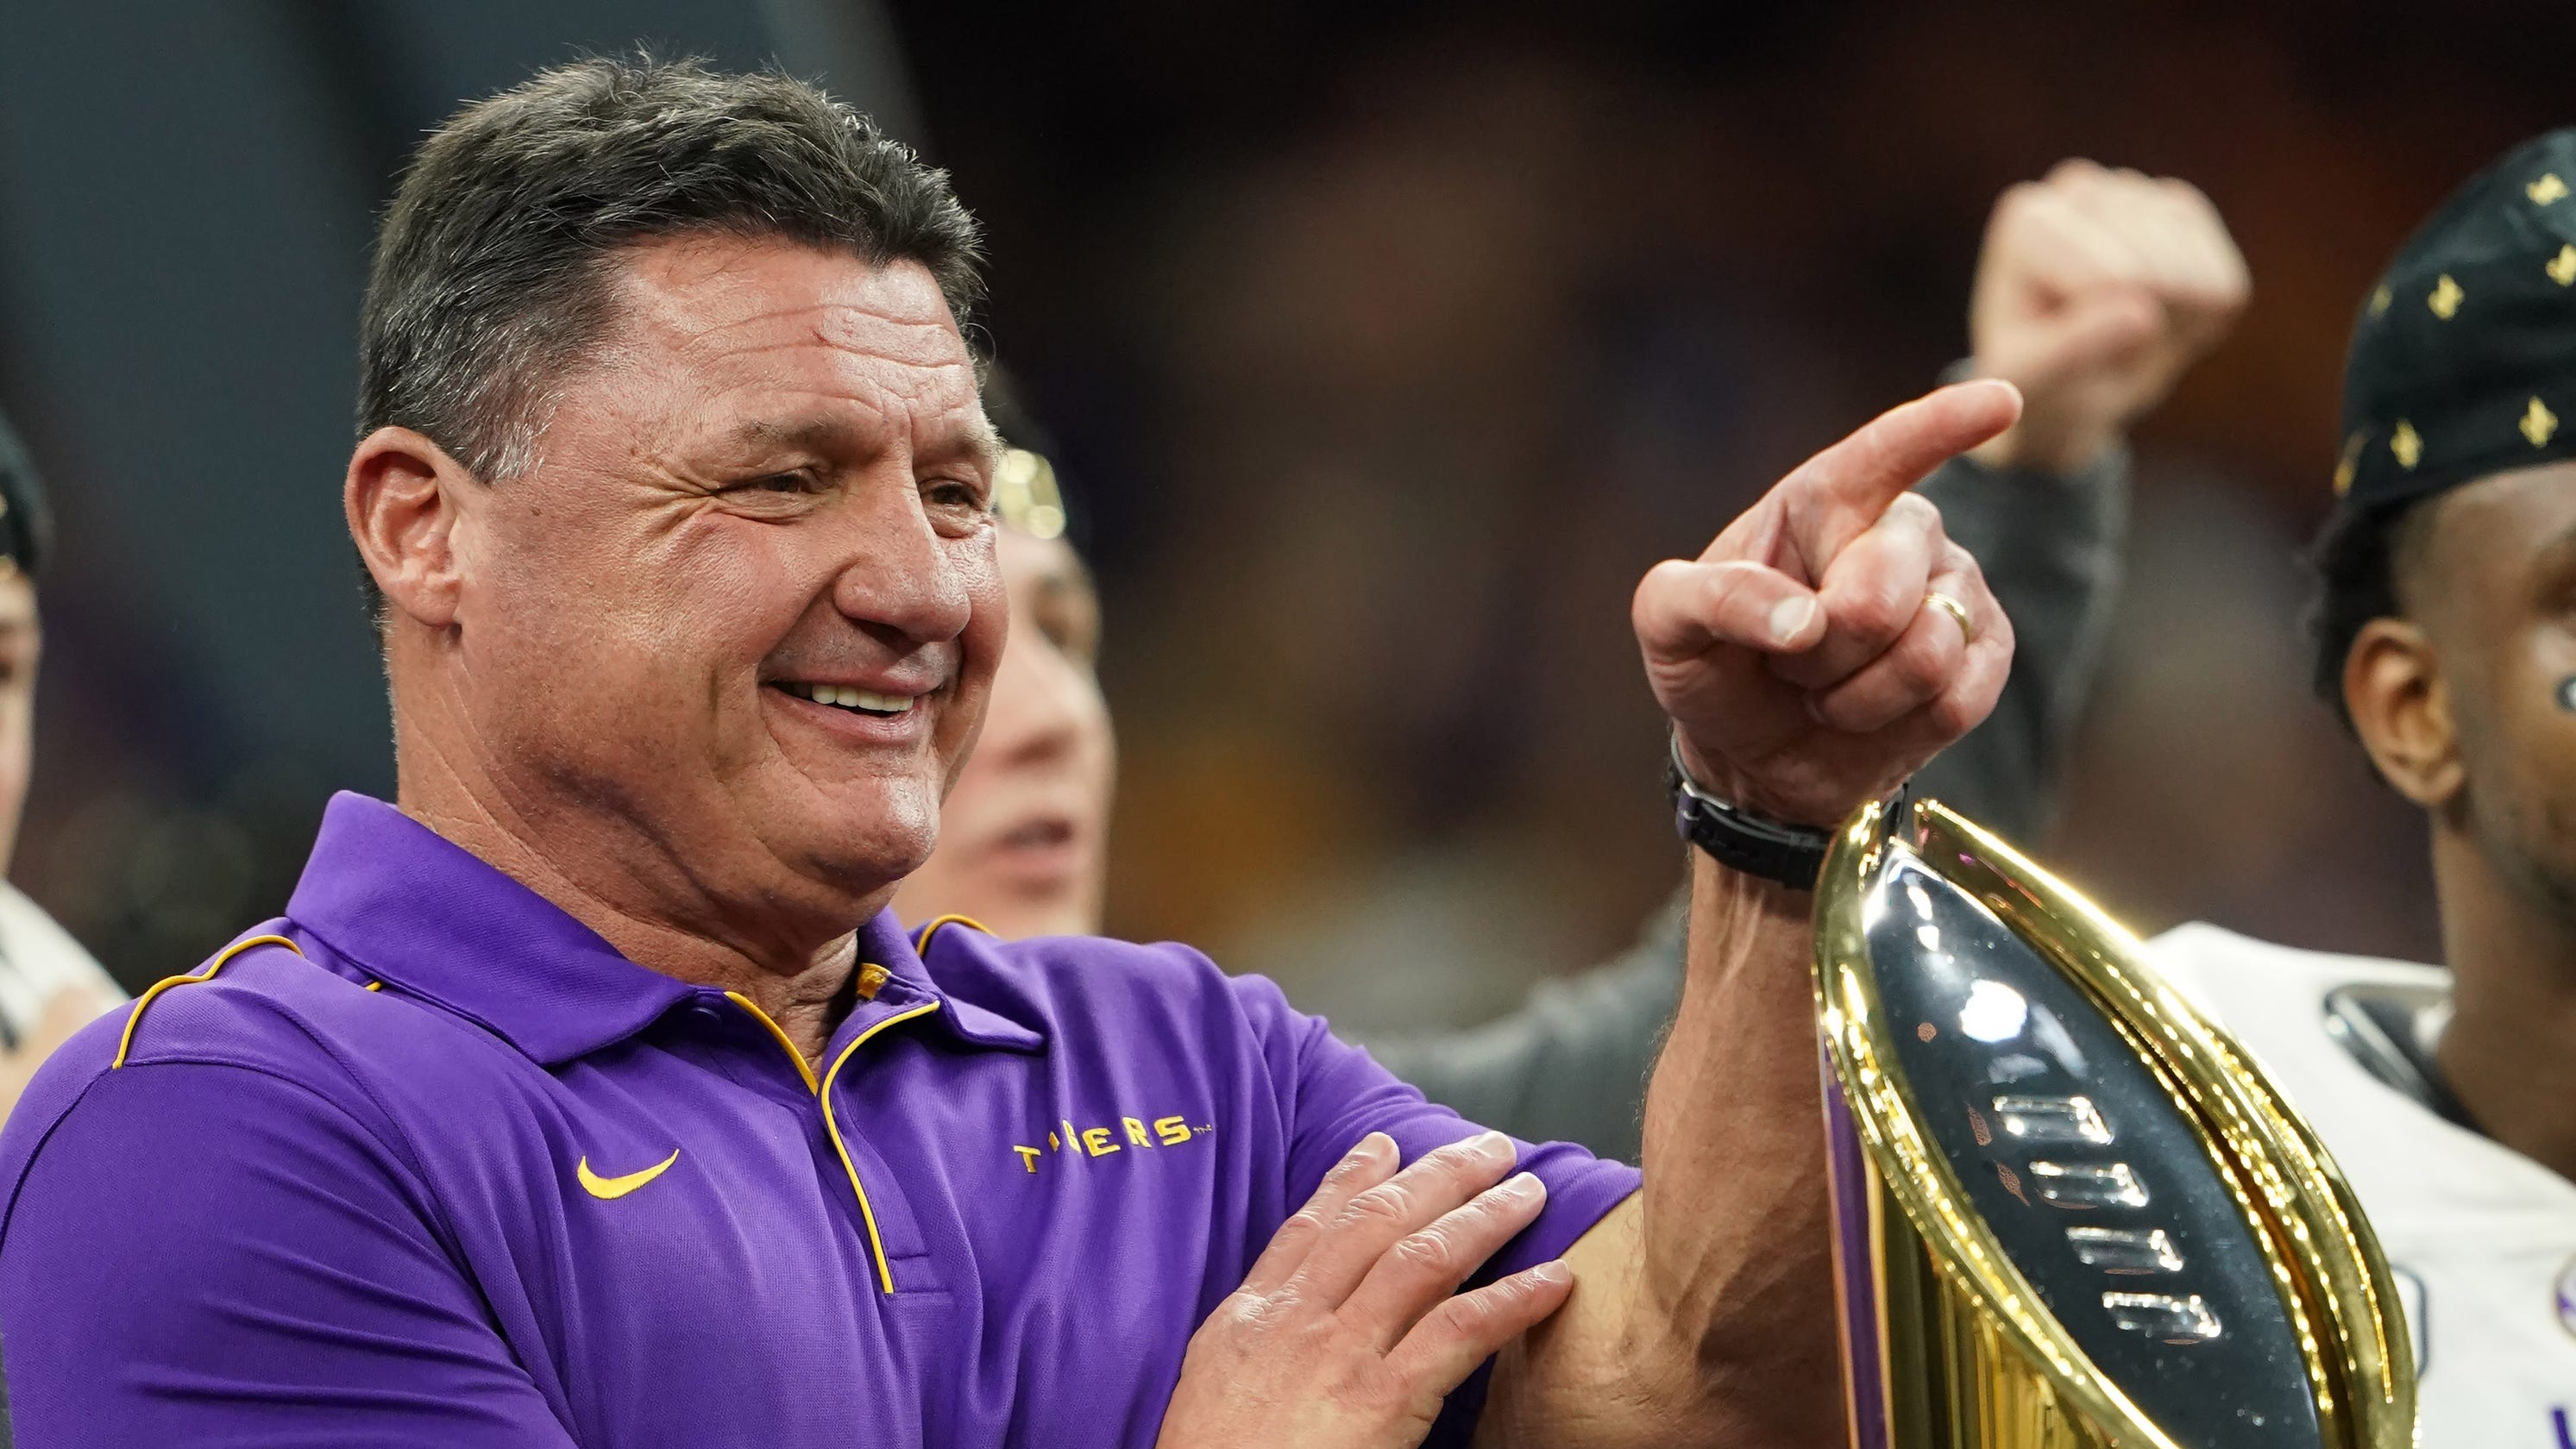 LSU coach Ed Orgeron reveals most of players already 'have caught' COVID-19